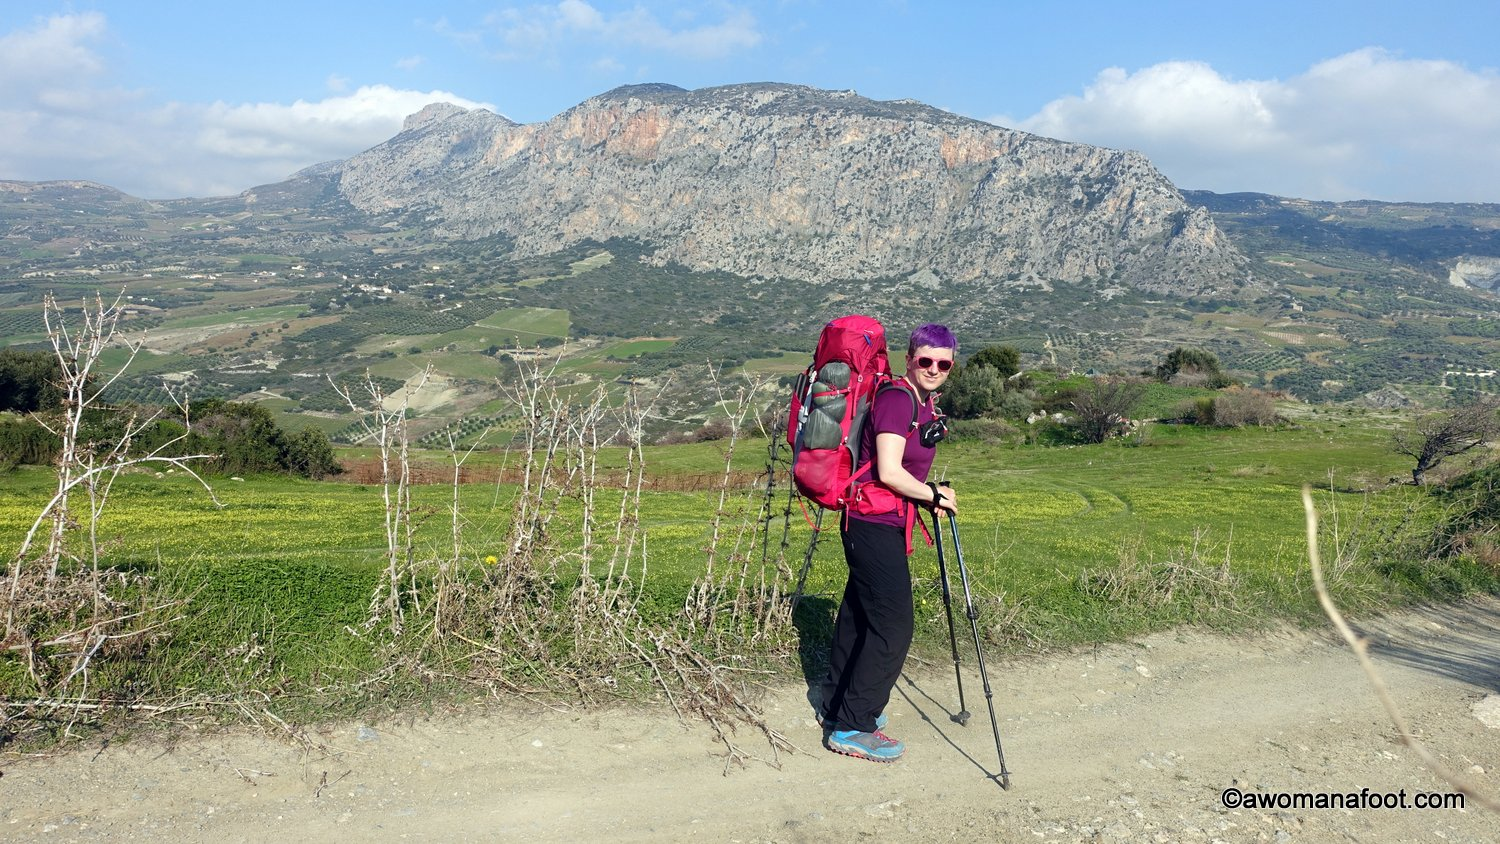 Hiking along the E4 on Crete - in the Iraklio/Heraklion district. Walking solo through charming villages, olive groves, and vineyards - and wild camping under olive branches. From Ano Asites, through Profiti Ilias to just before Archanes. Awomanafoot.com #hiking #E4trail #Crete #solo #FemaleHikers #WomenHiking #WildCamping #Trail   What to do on Crete   HIking on Crete   Visit Crete   Adventures on Crete  